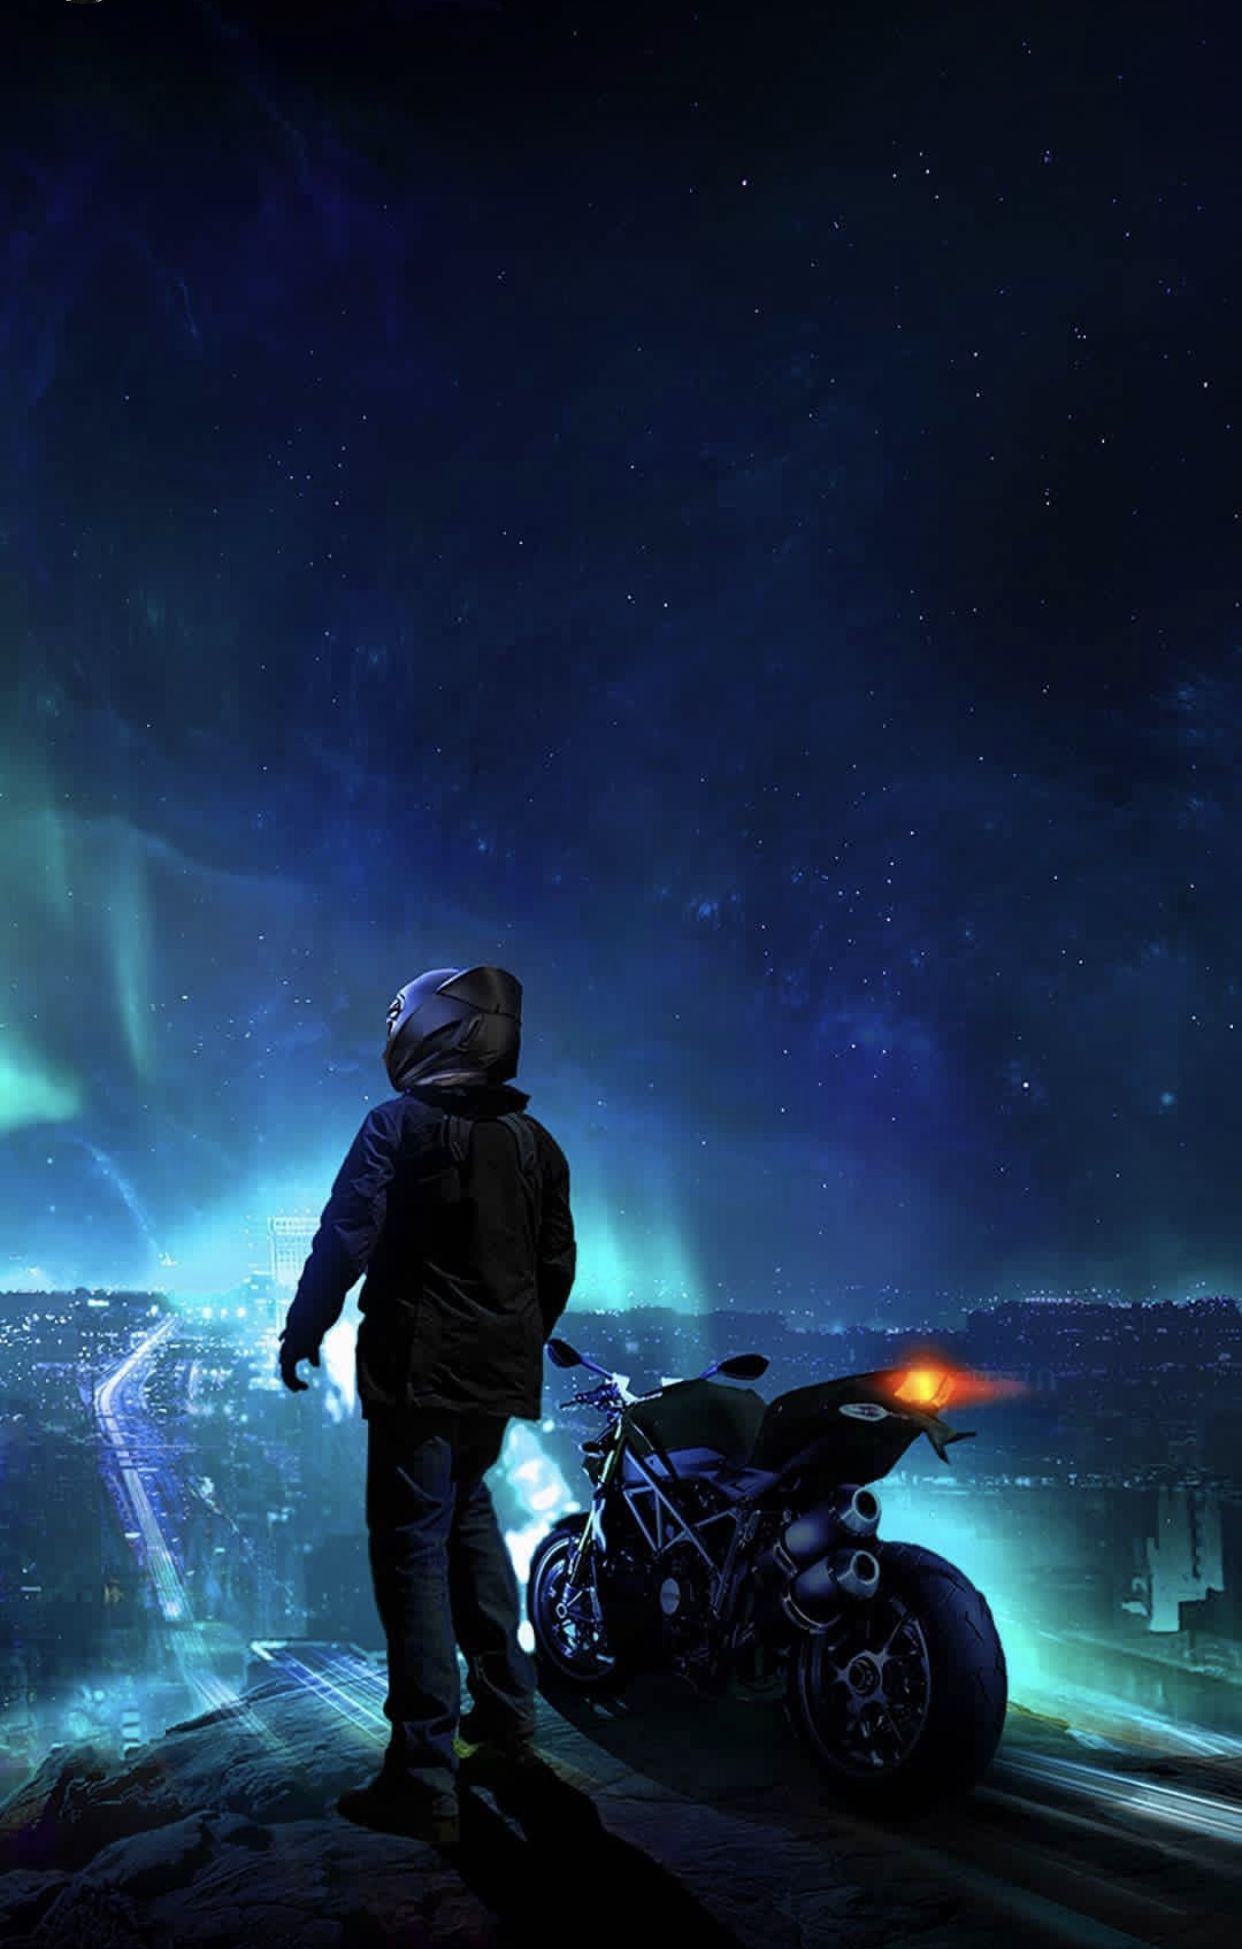 Pin by Sourav Grover on Bikers Quotes Artistic wallpaper